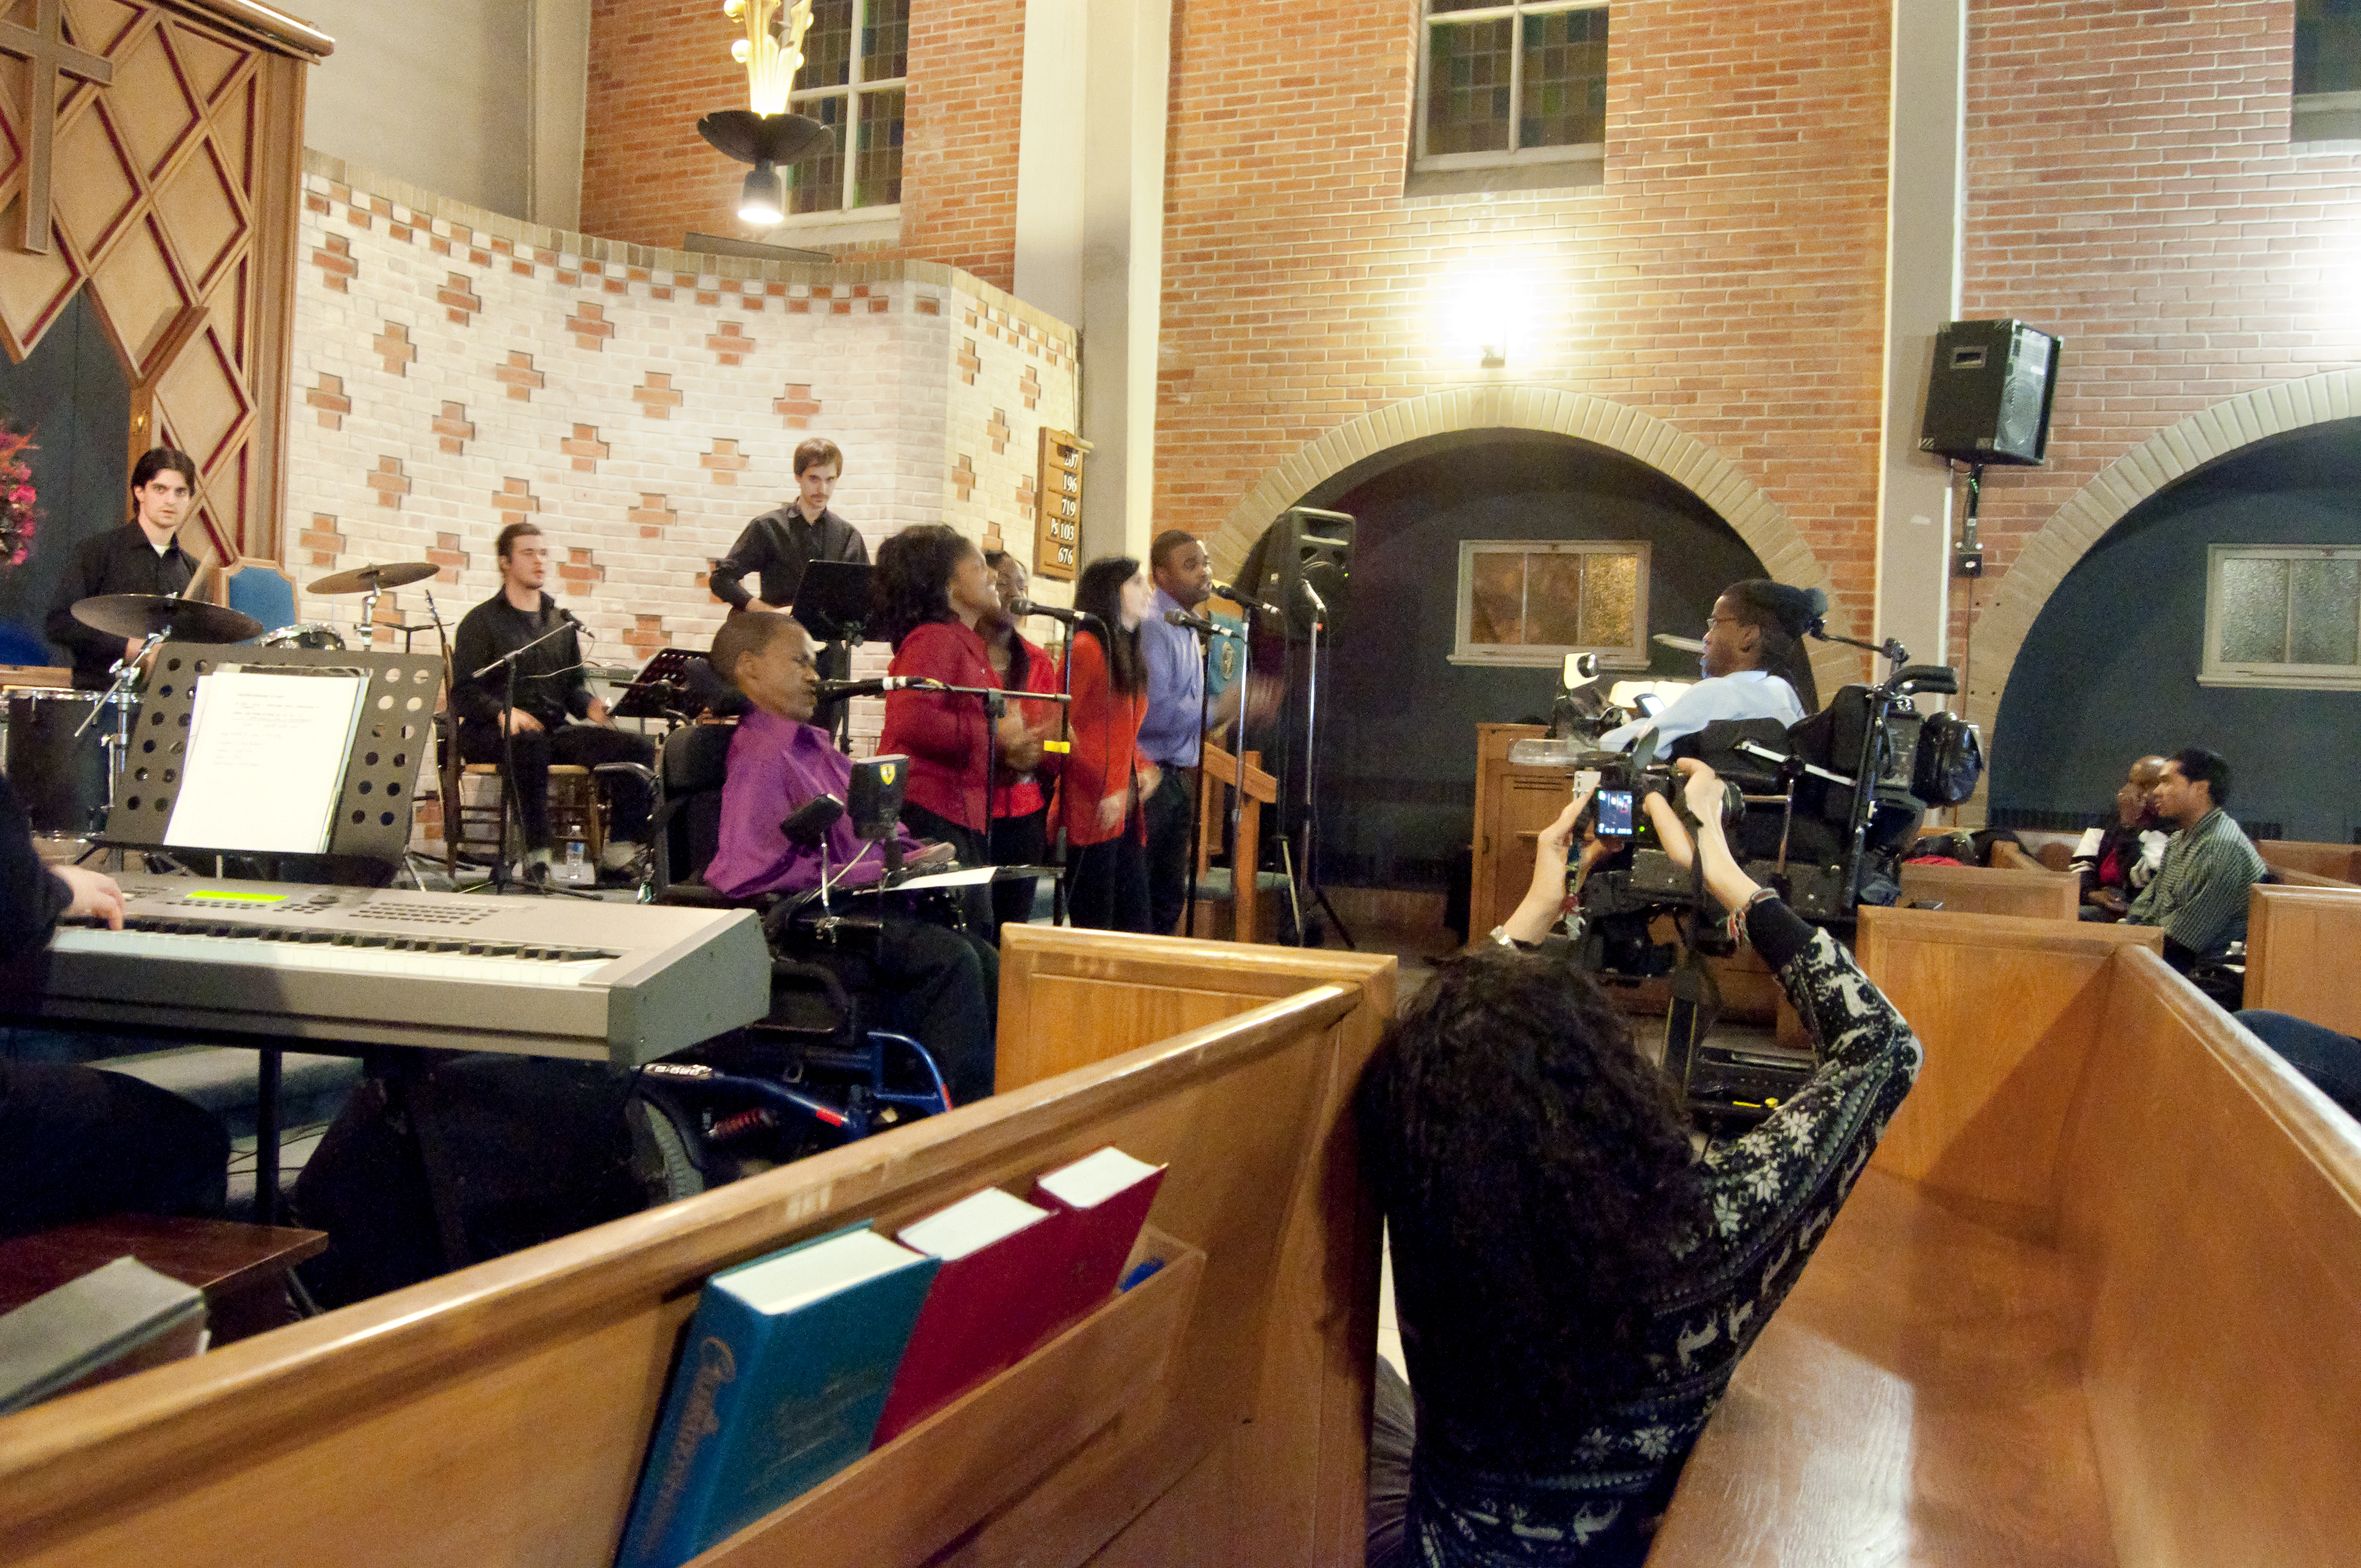 B. Paul Tshuma conducts the choir from his chair in a church setting. There is a band playing instruments behind the choir.